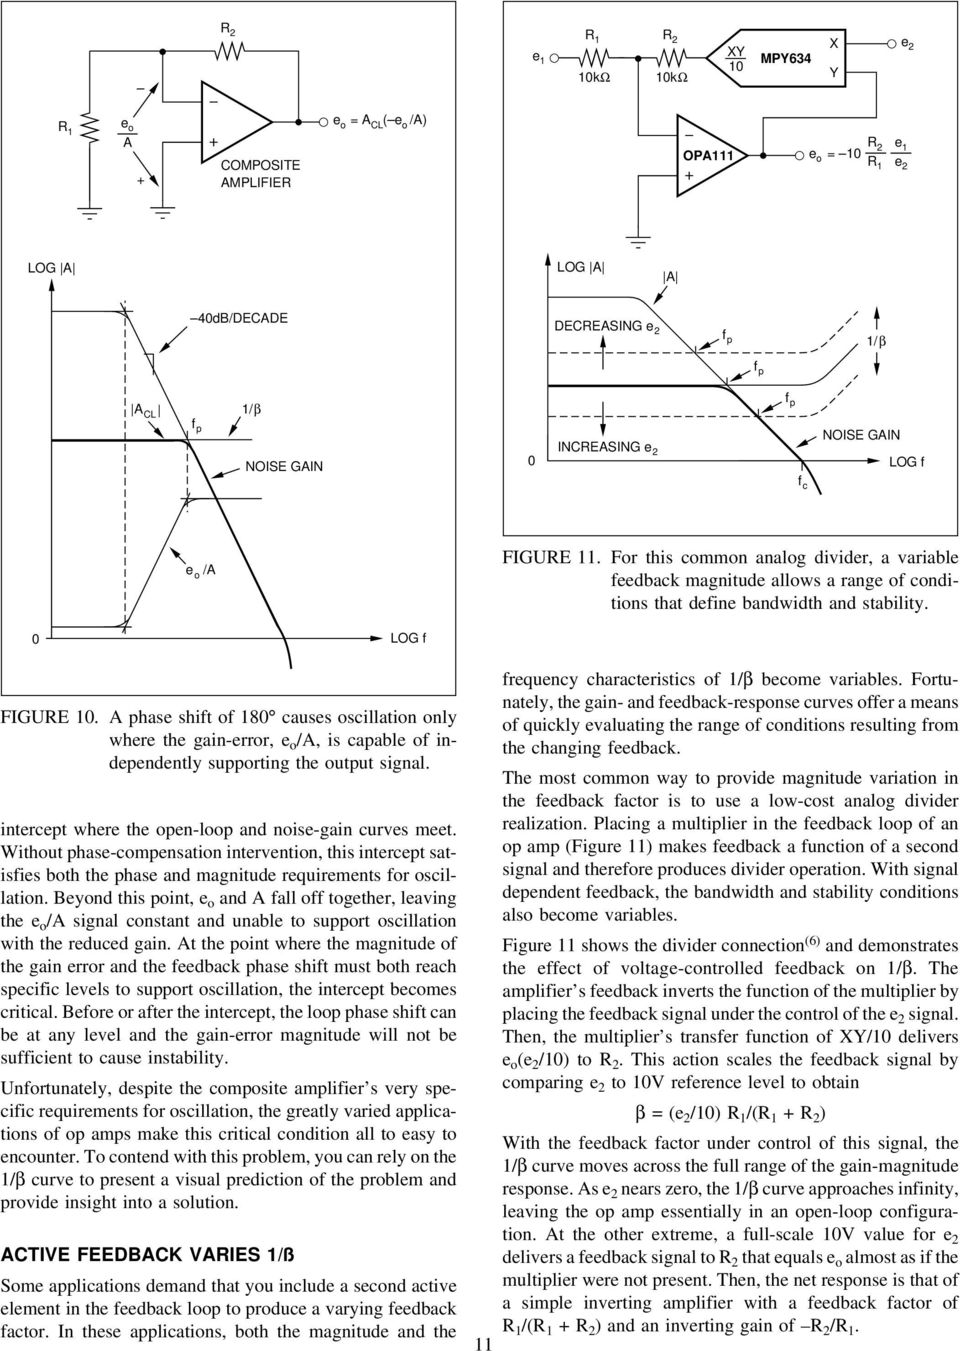 Application Bulletin Pdf Representative Schematic Of A Currentfeedback Opamp Or Amplifier Phase Shift 18 Causes Oscillation Only Where The Gain Error